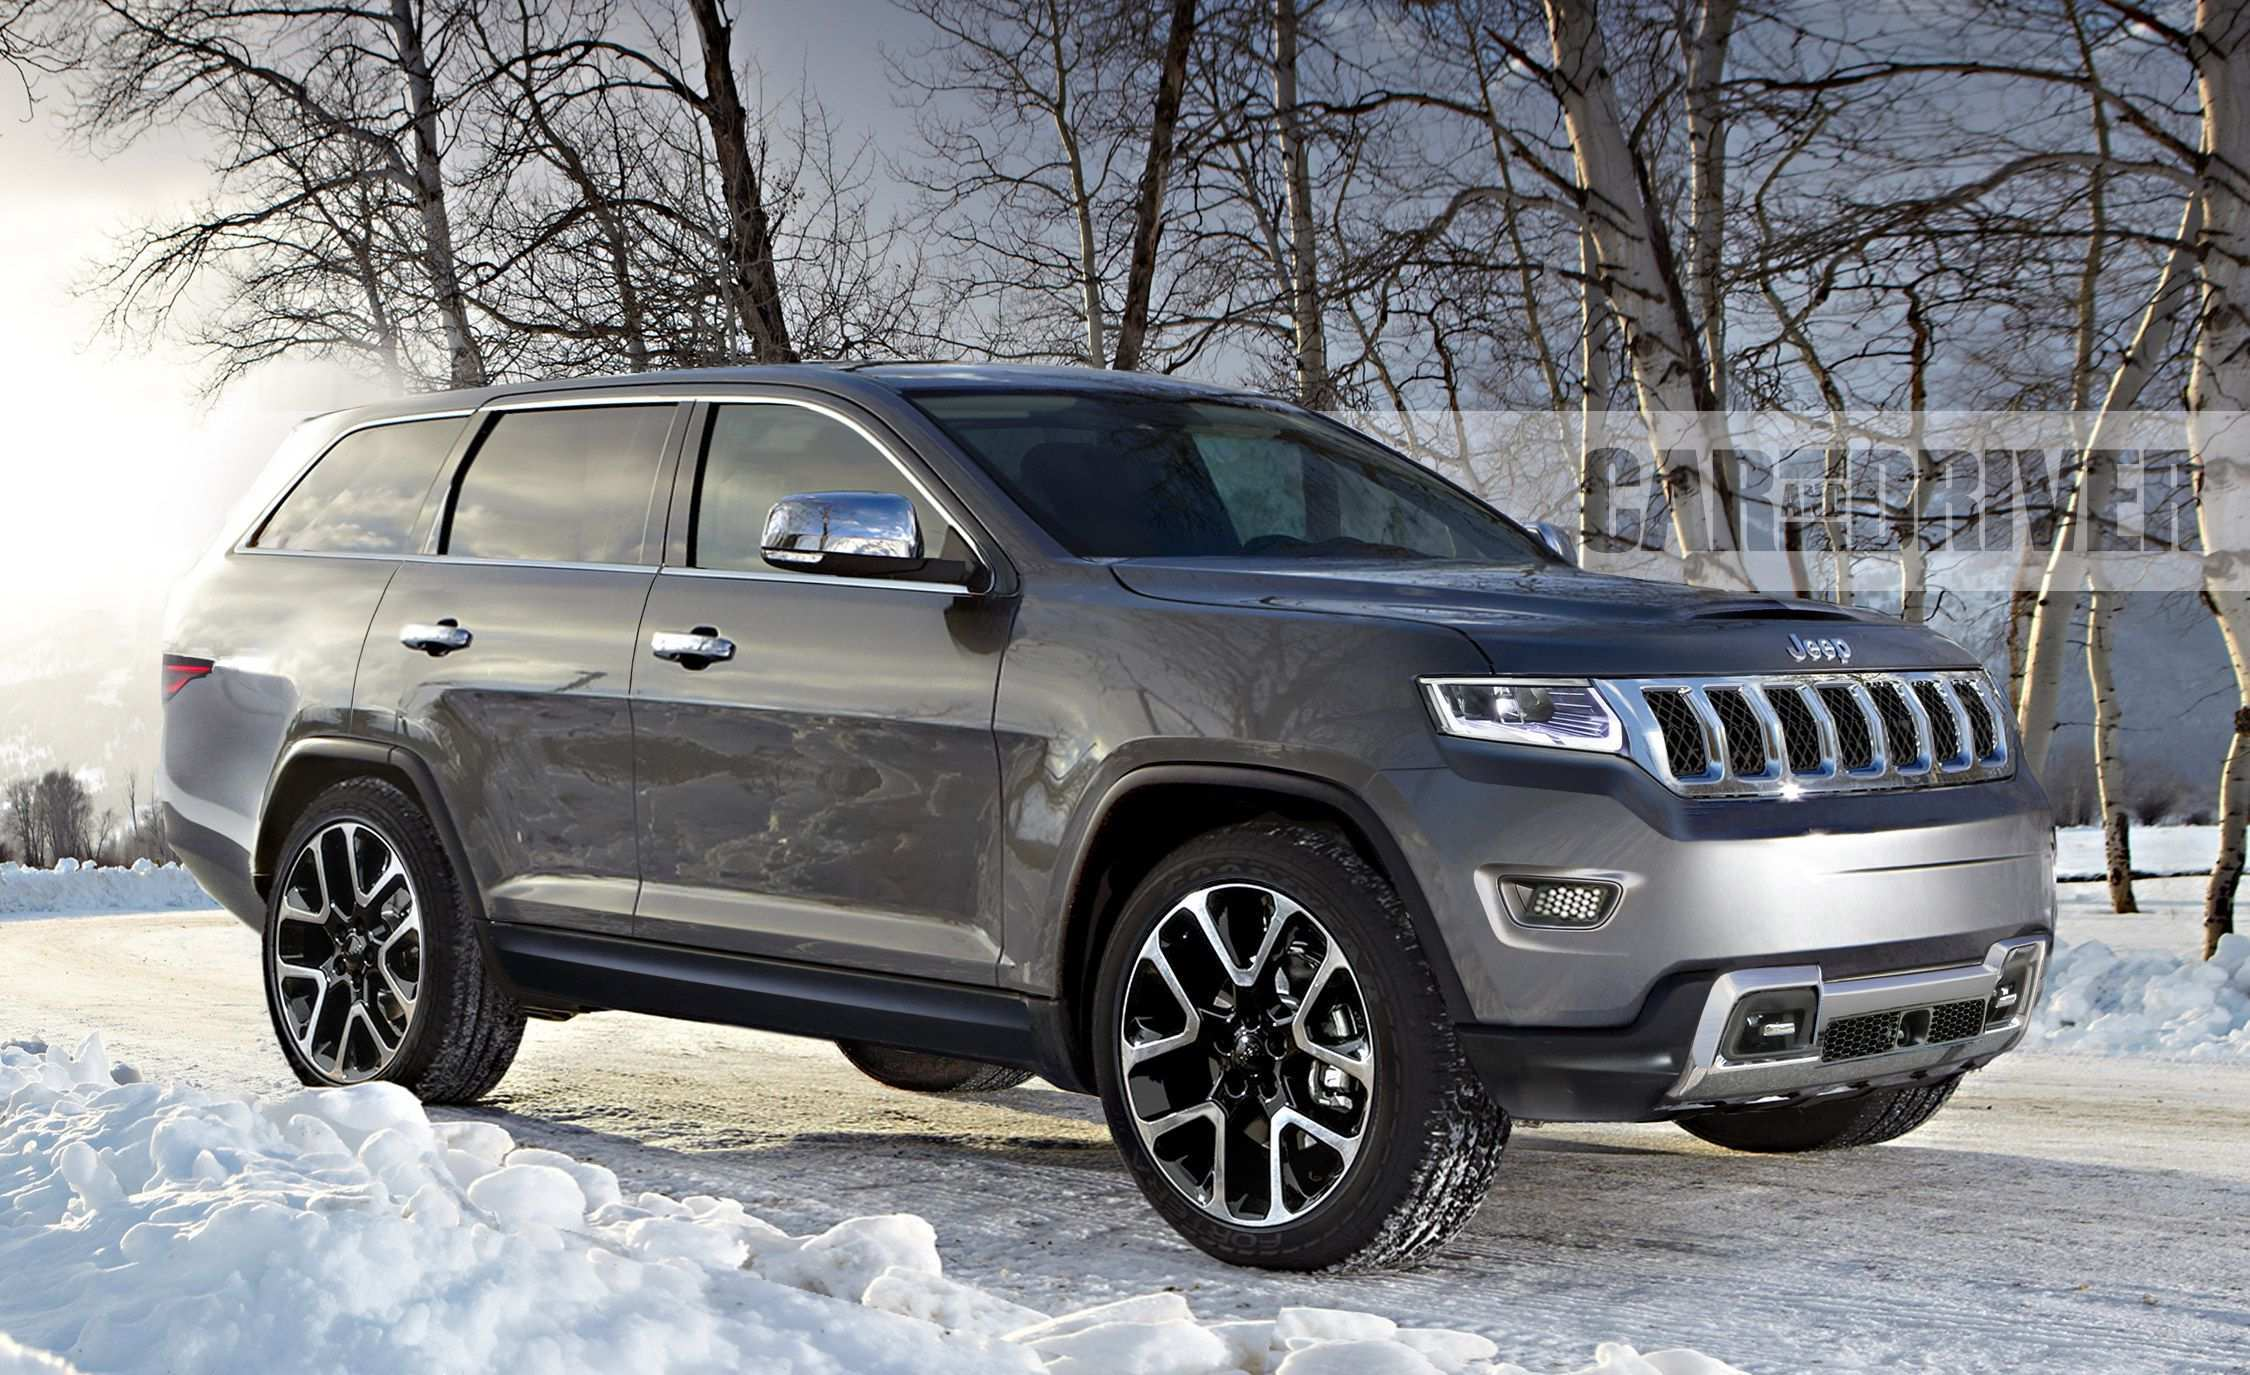 46 New 2020 Jeep Grand Cherokee Redesign Price and Review by 2020 Jeep Grand Cherokee Redesign